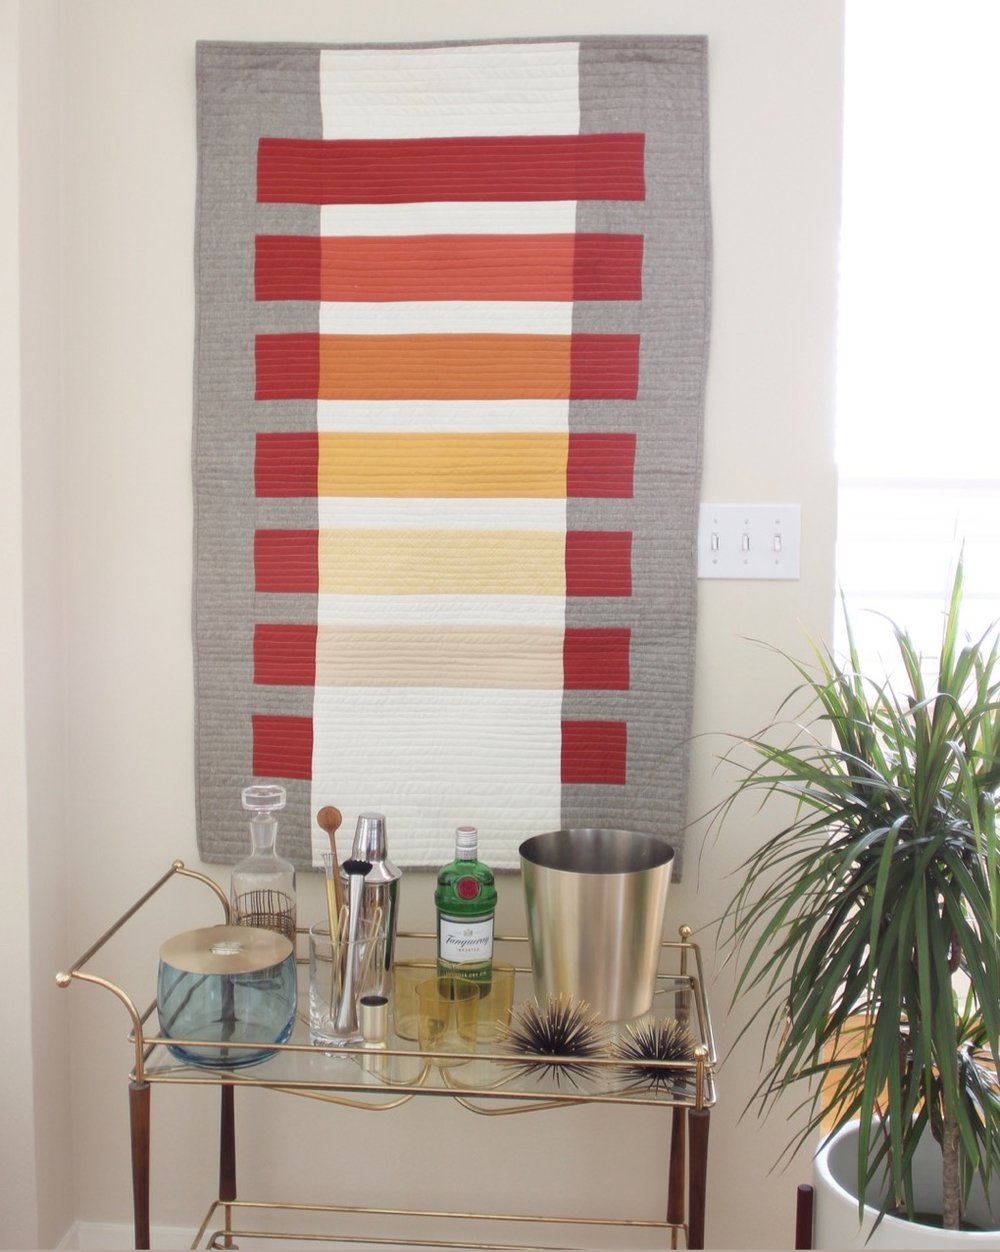 Josef Albers inspired Modern Transparency Quilt by Callie Works-Leary.